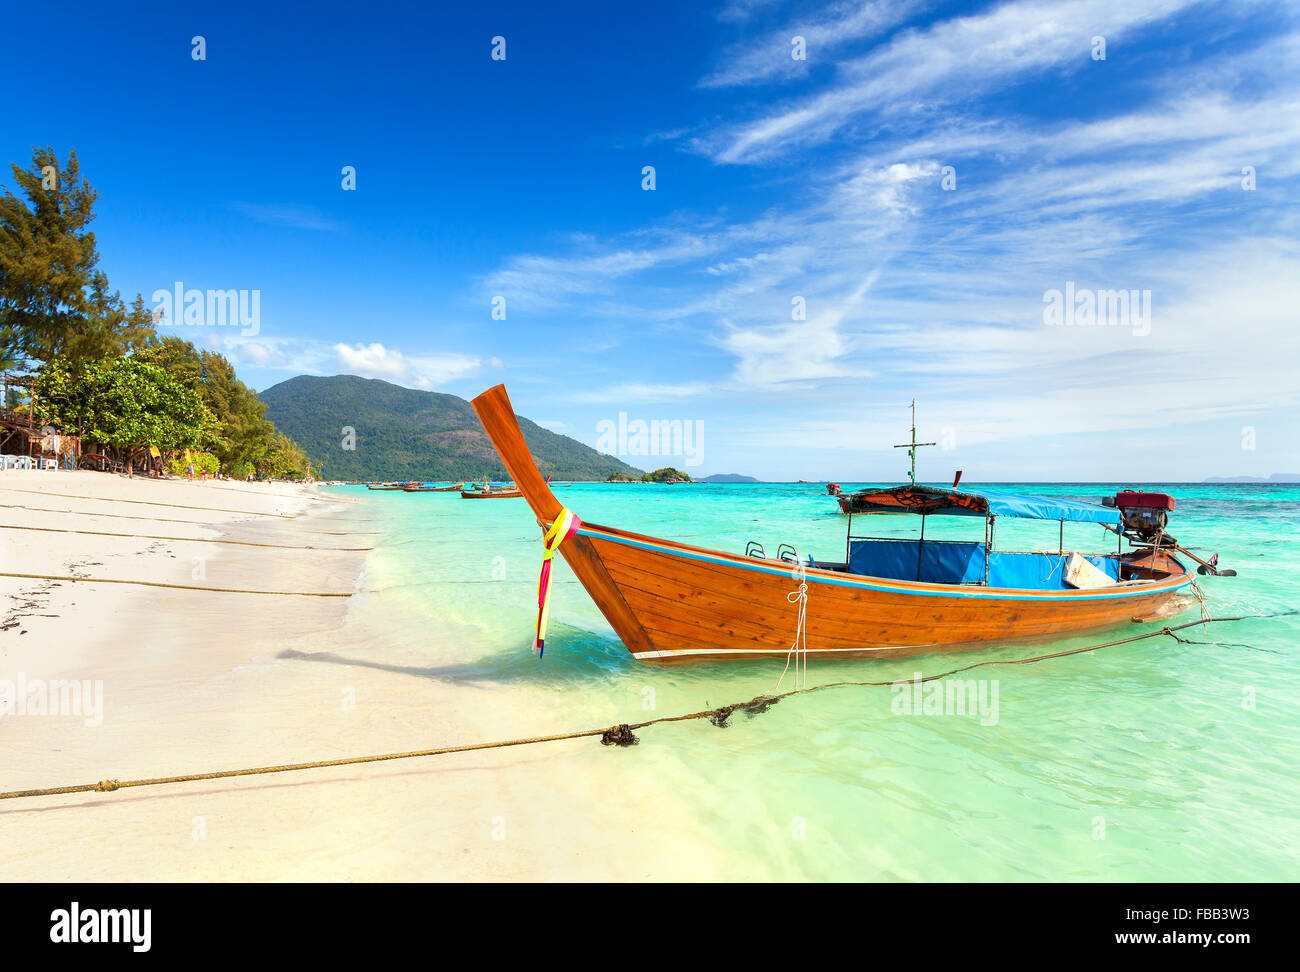 Long tail boat at a beautiful beach, Thailand. - Stock Image